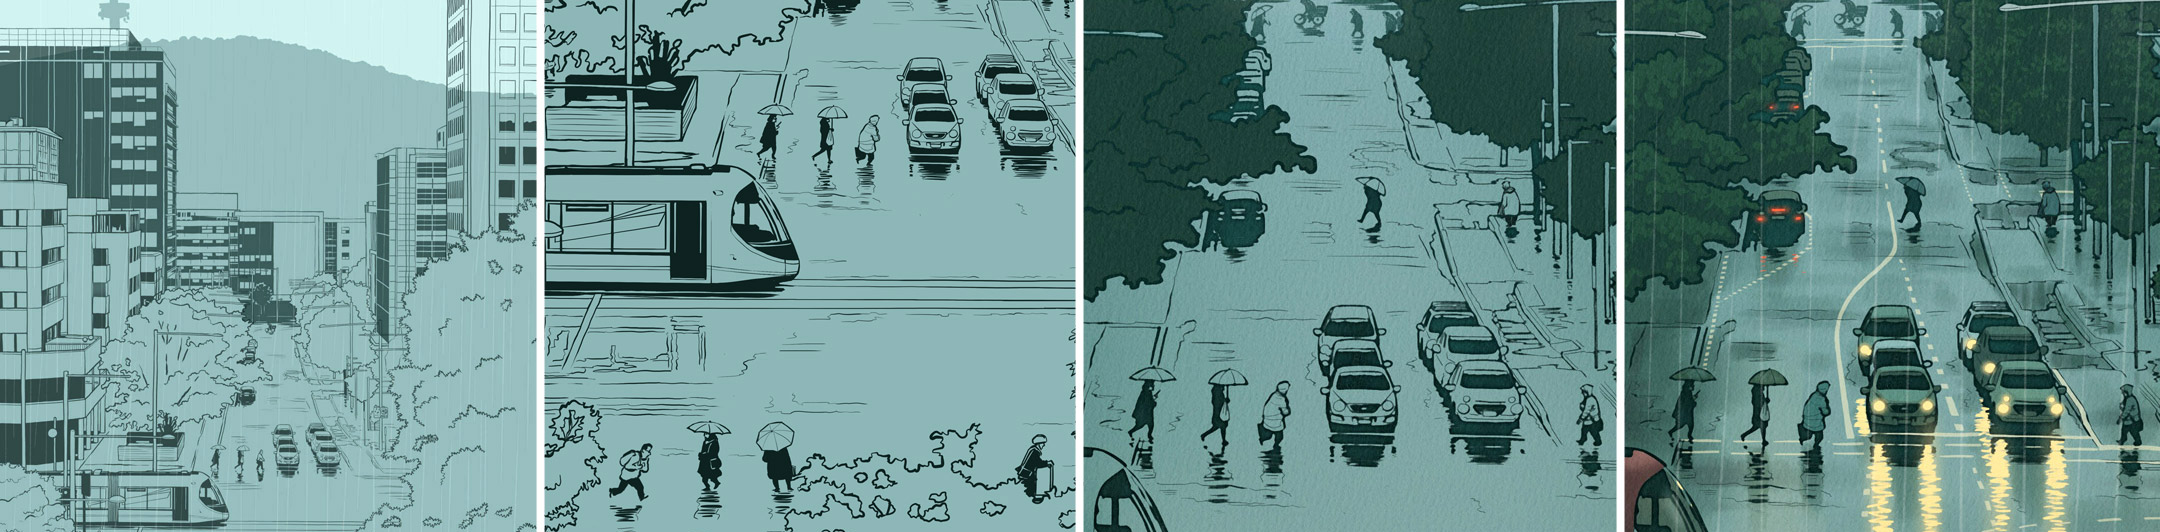 Rudd St in the rain, pics of the drawing process